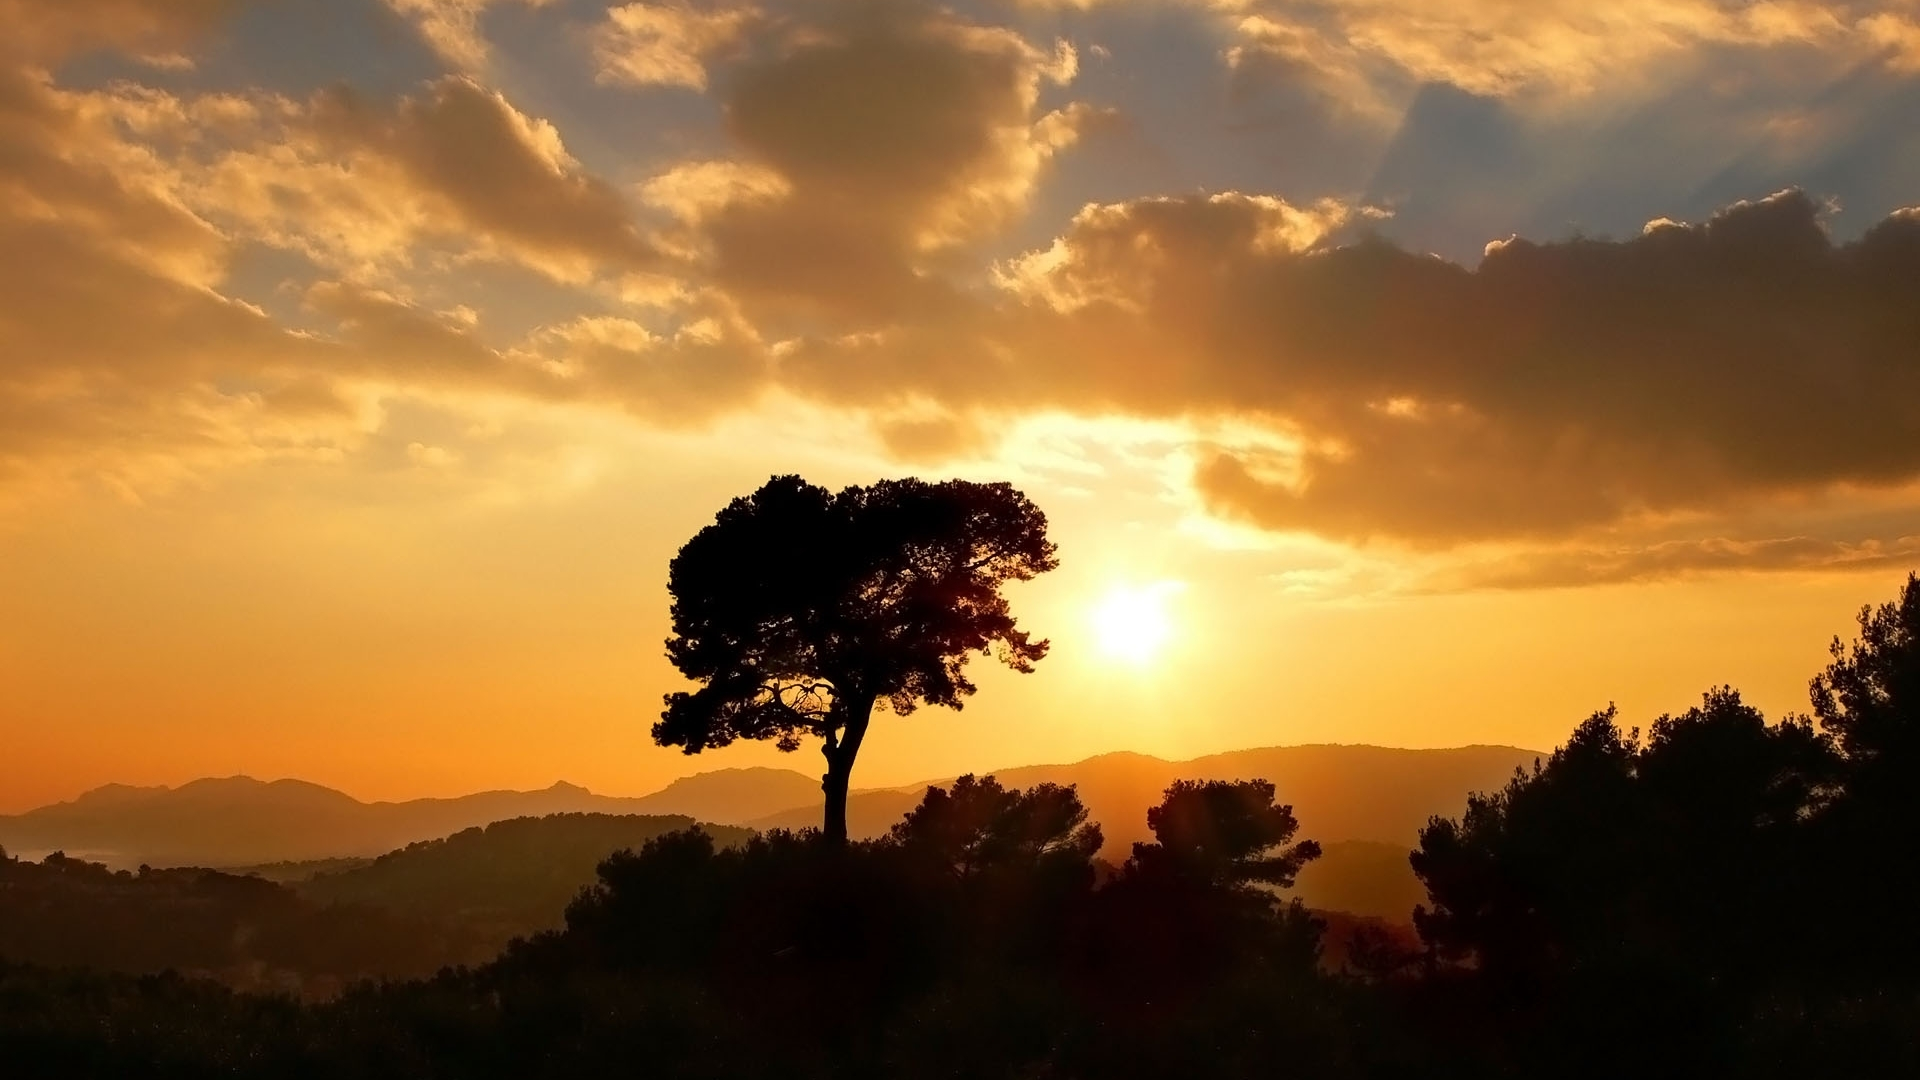 sunset Landscapes sun Trees HD Wallpaper